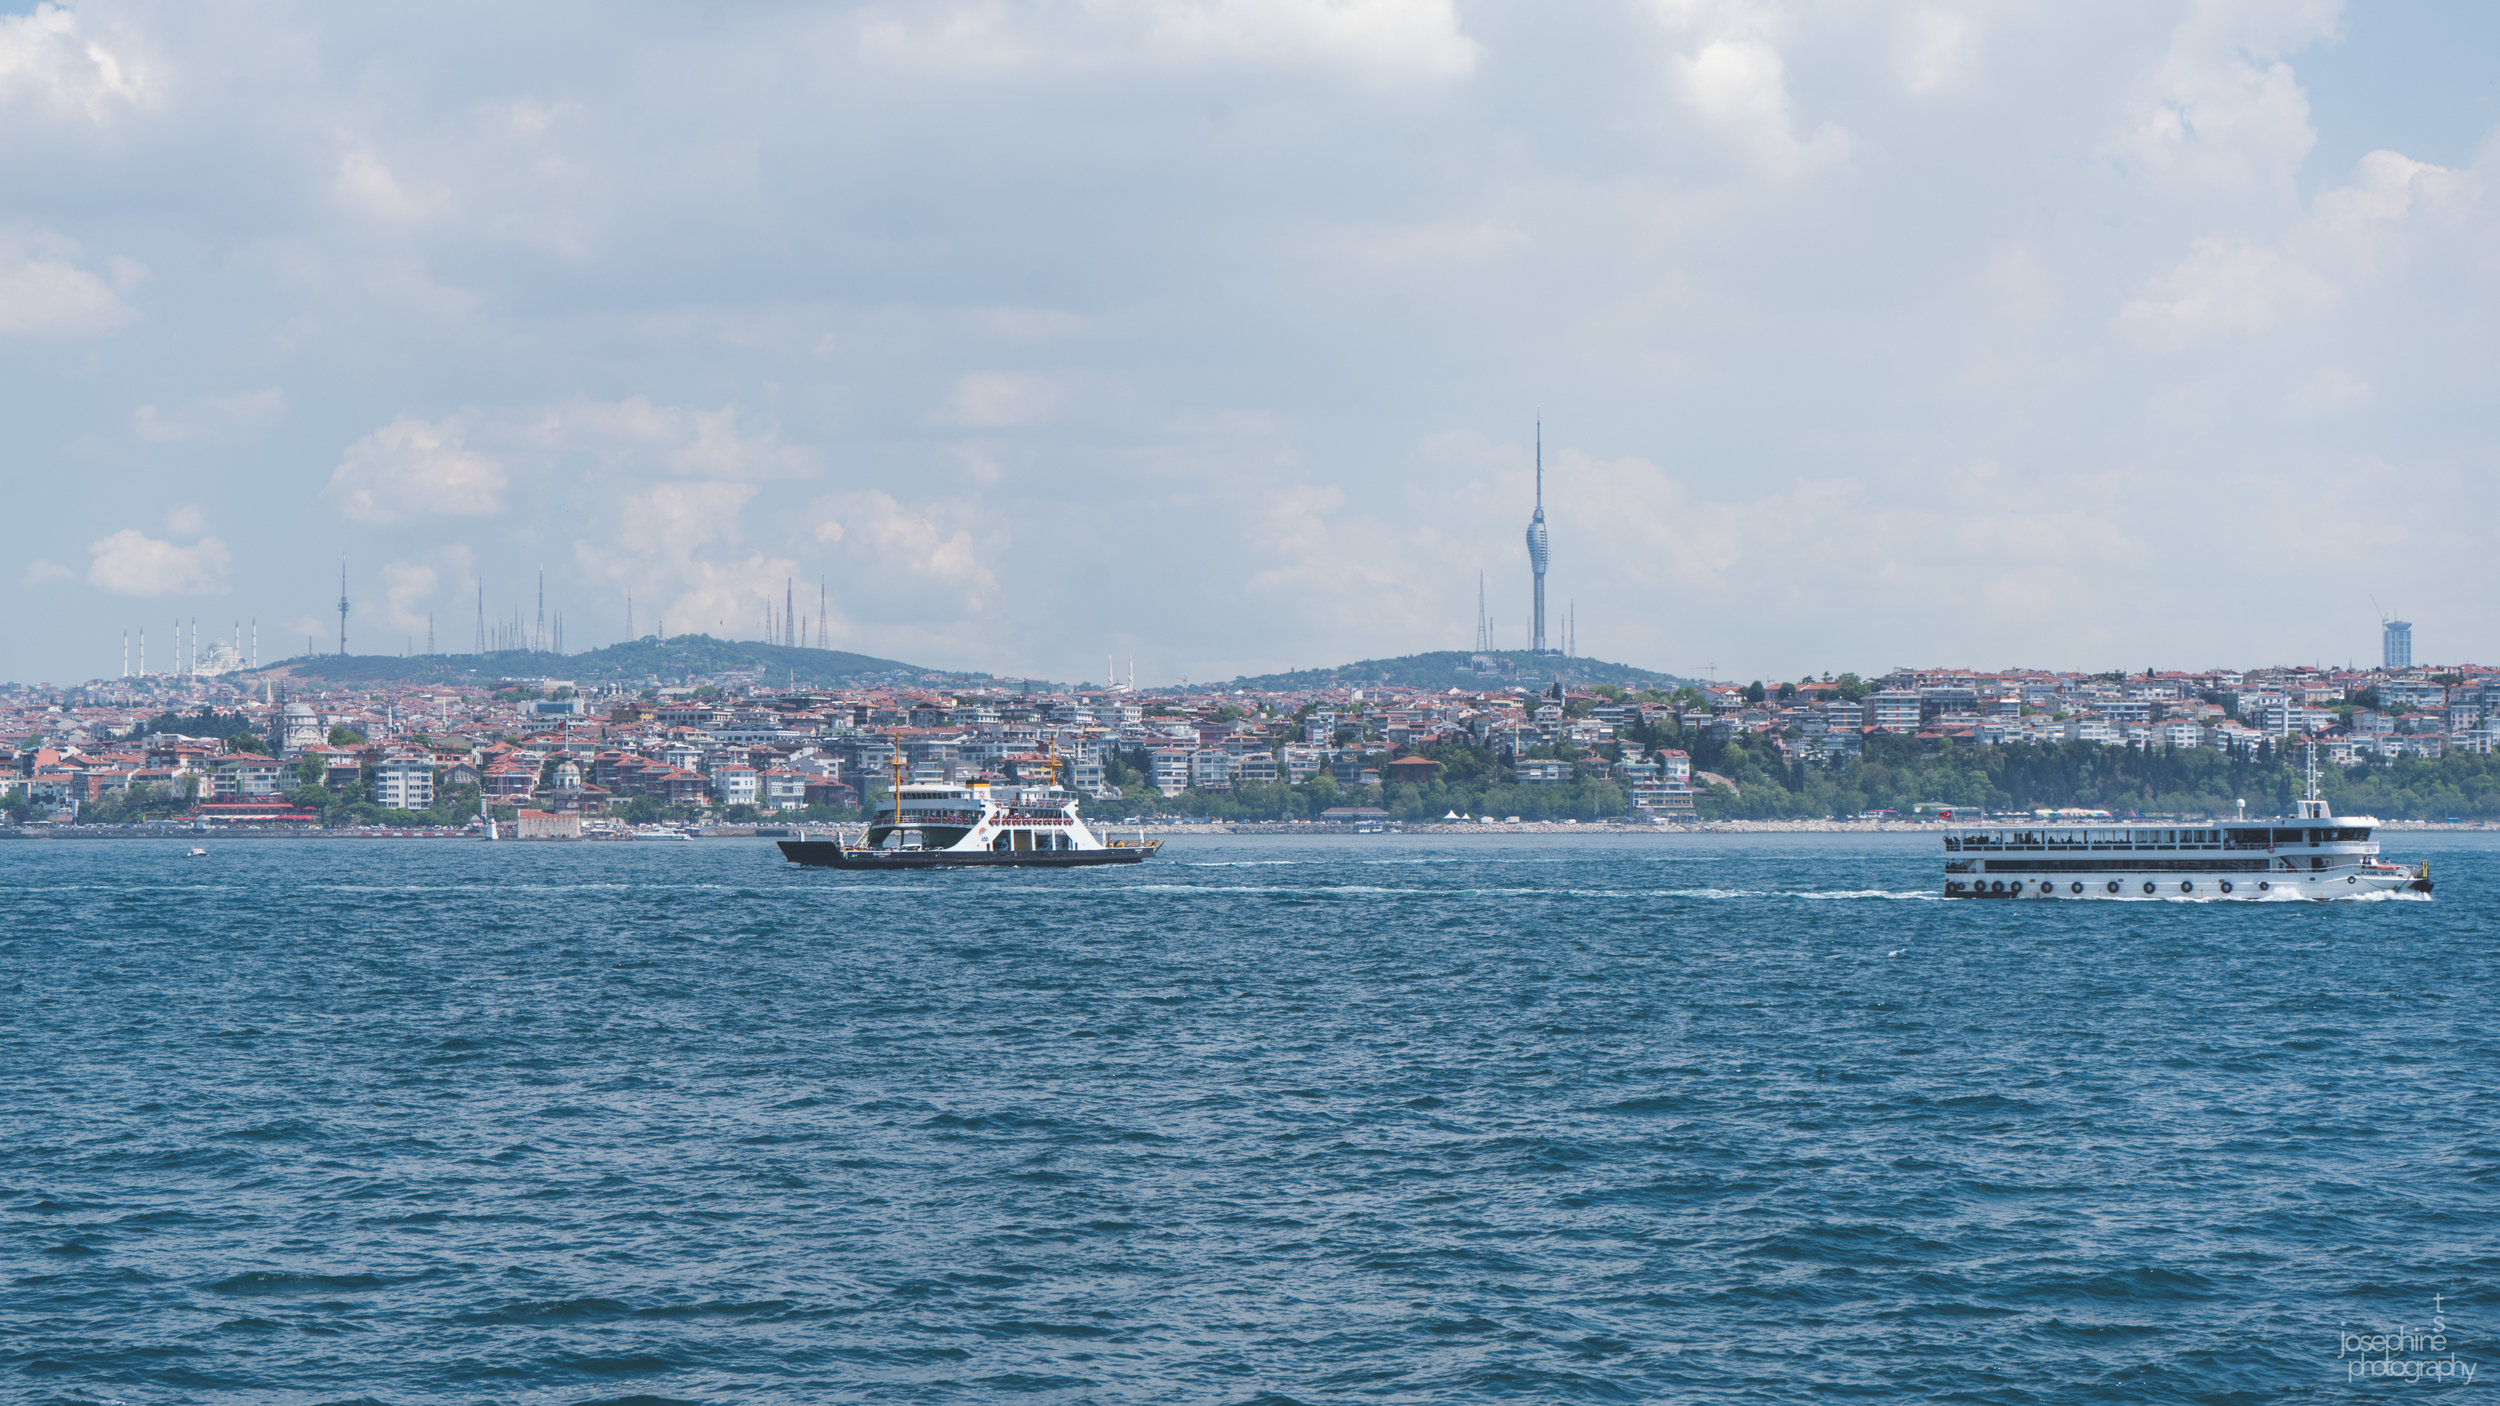 Ferry ride between Karikoy and Kadikoy